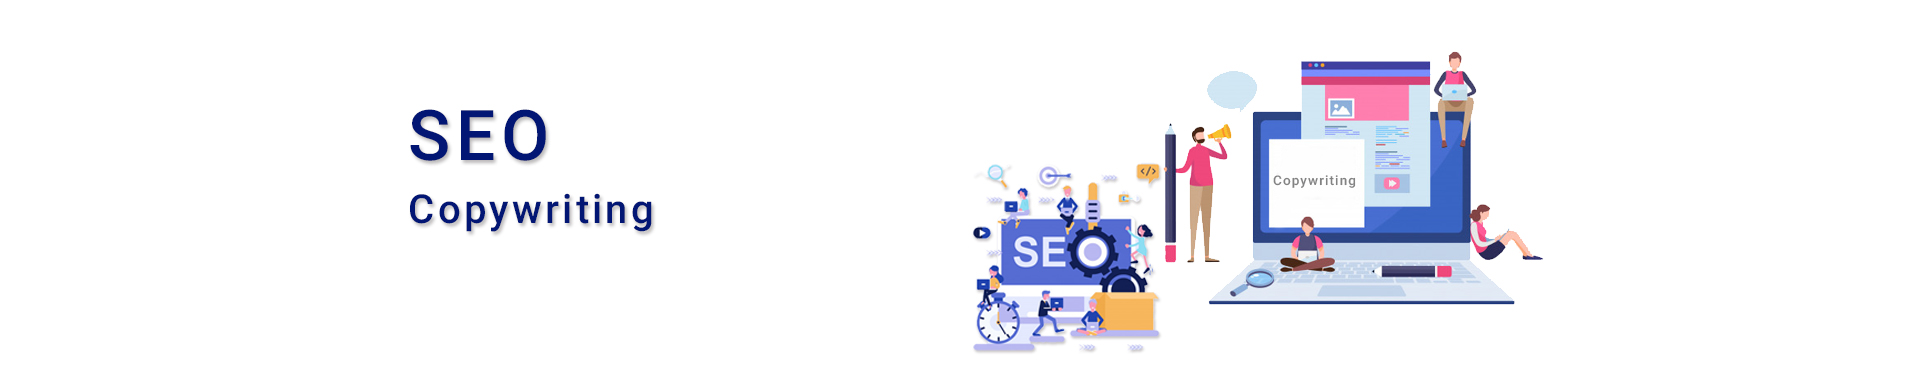 Seo copywriting services google